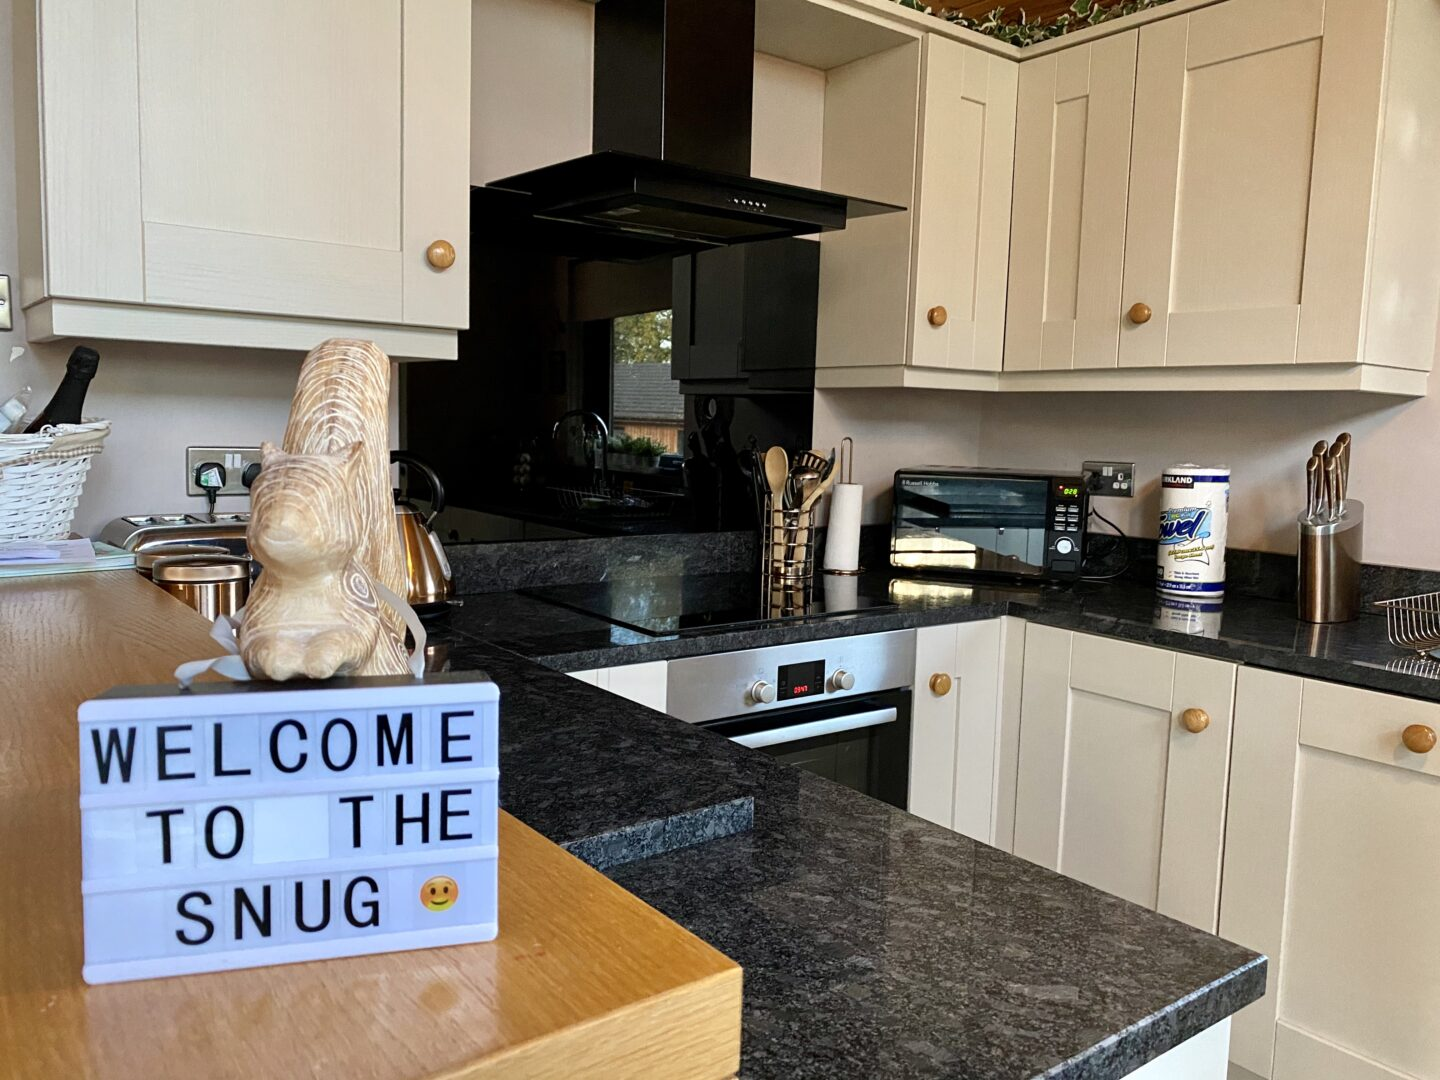 Kitchen with a small sign that says welcome to the snug